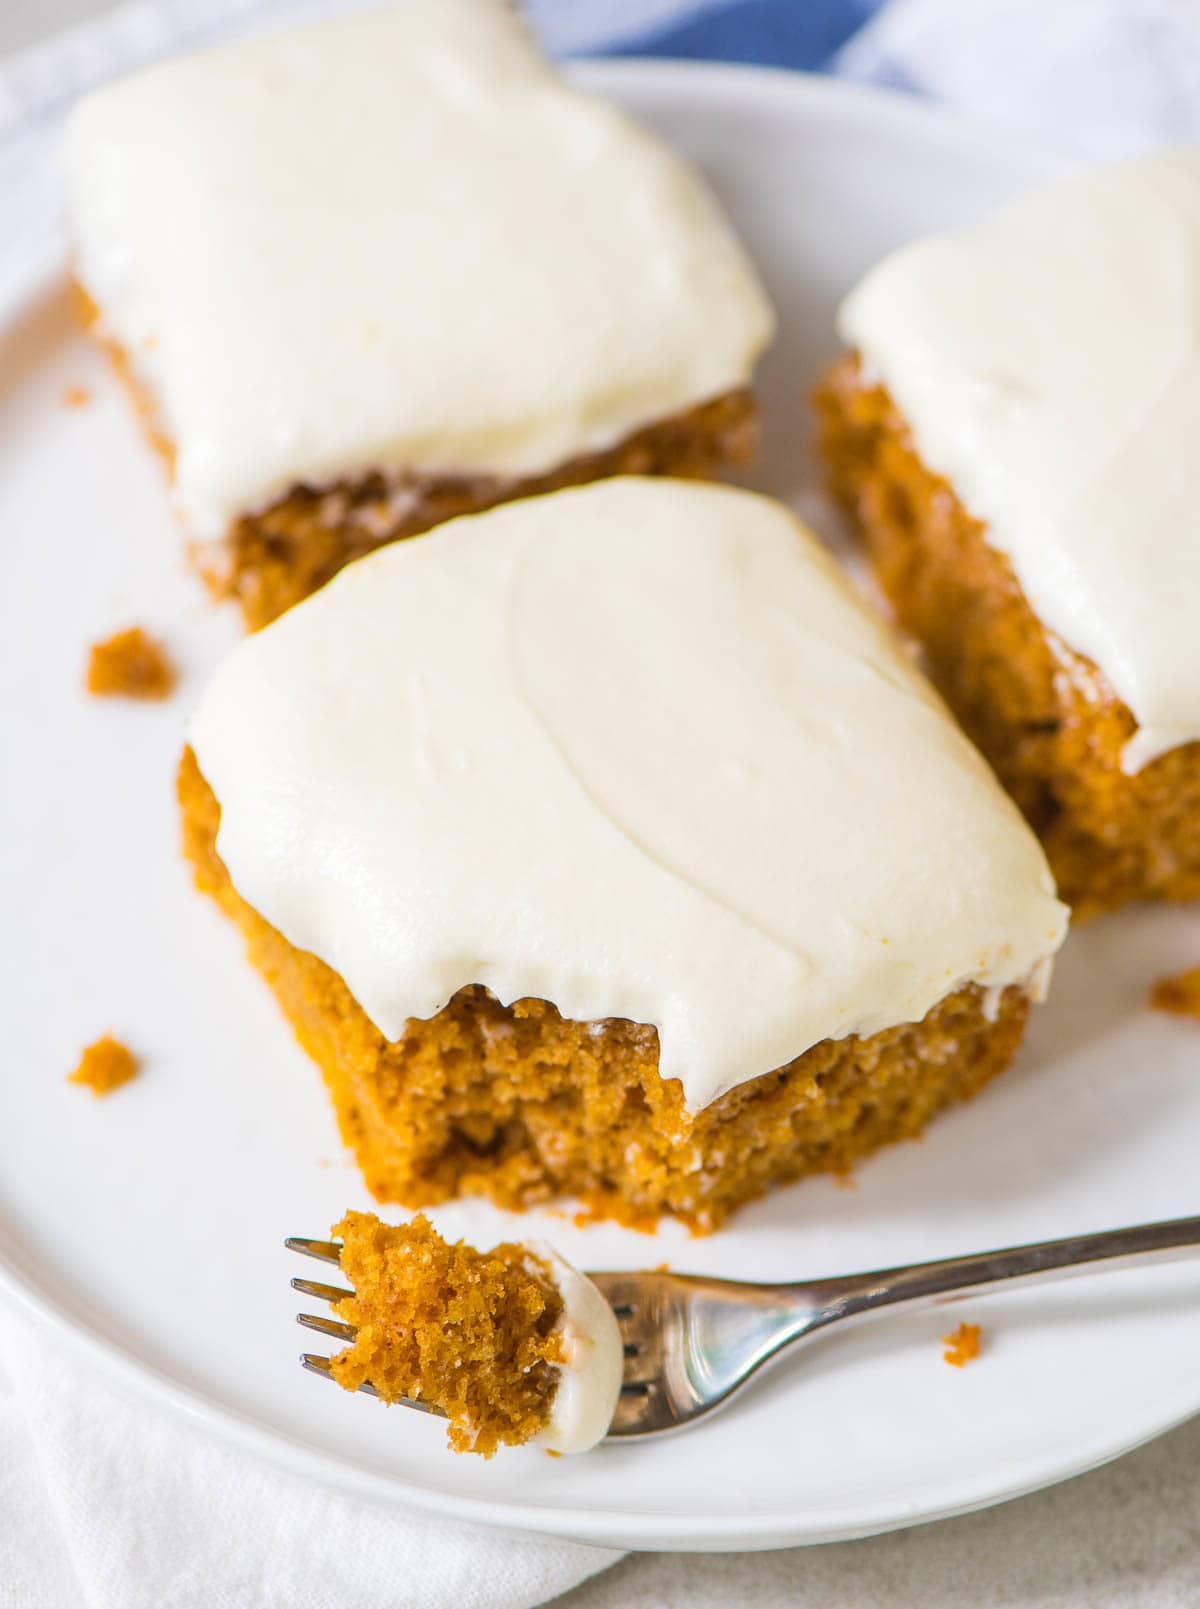 Greek Yogurt Pumpkin Spice Sheet Cake with Cream Cheese Frosting. SO DELICIOUS. Healthy pumpkin dessert recipe that's just as moist and decadent as the original. EASY, one-bowl, and perfect for fall and Thanksgiving or holiday dessert tables. @wellplated